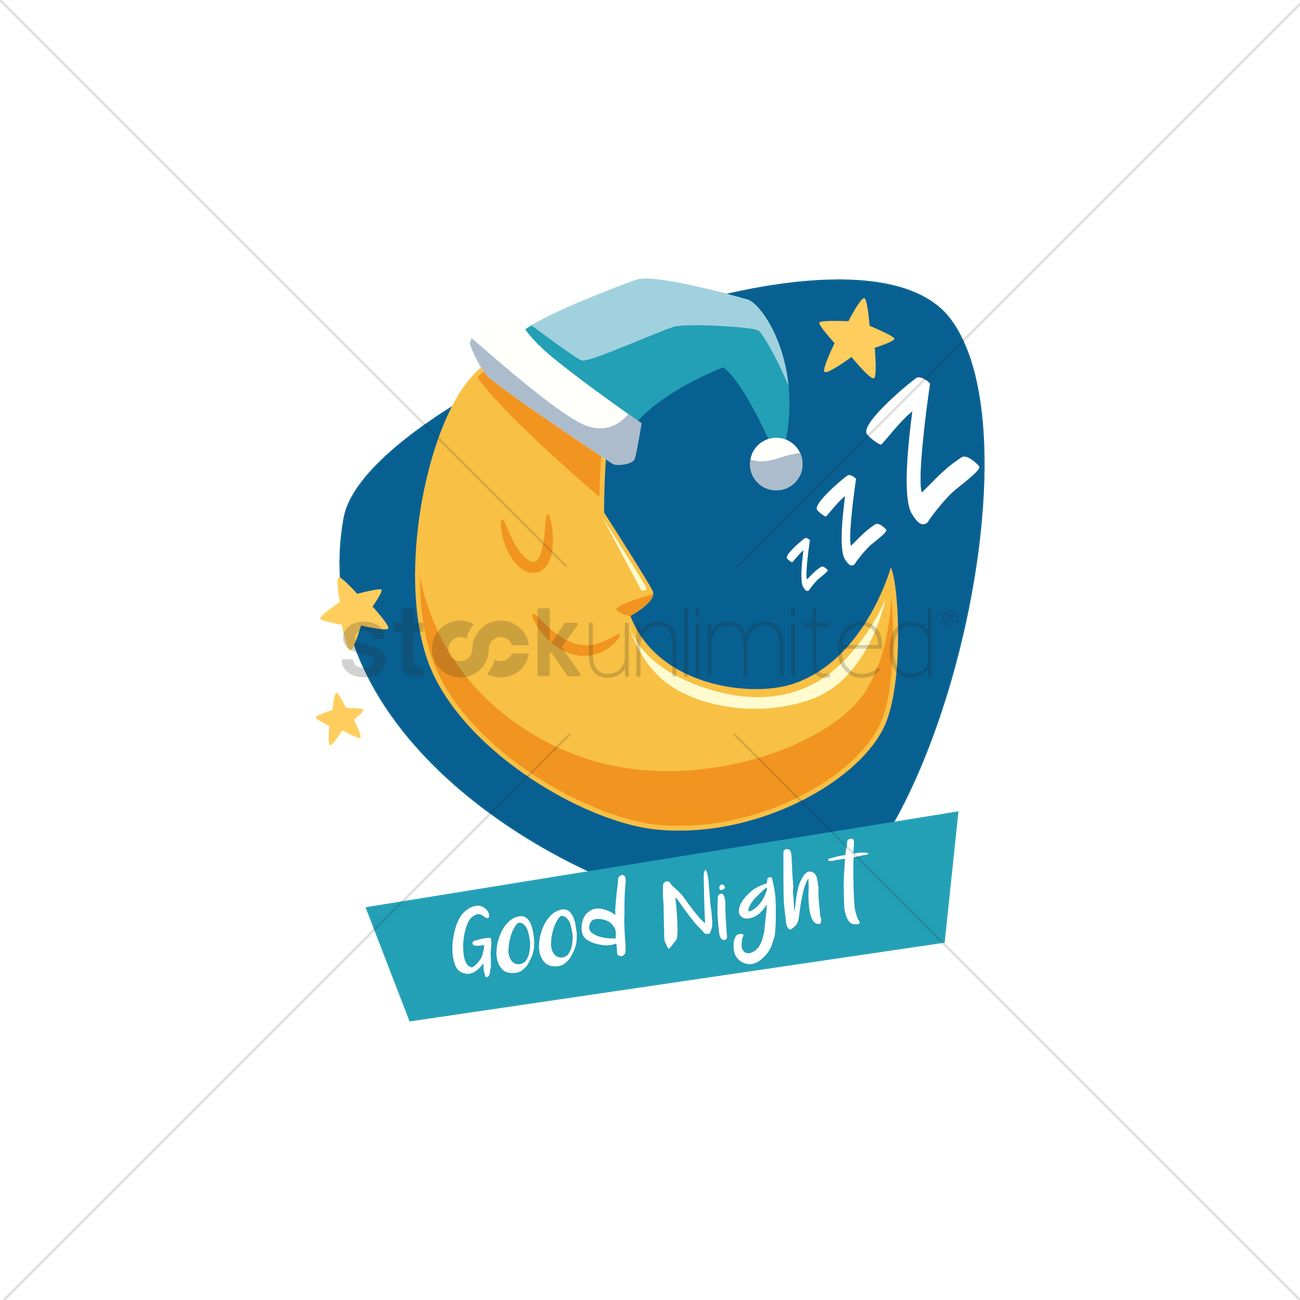 Moon With Good Night Text Vector Image 1803143 Stockunlimited